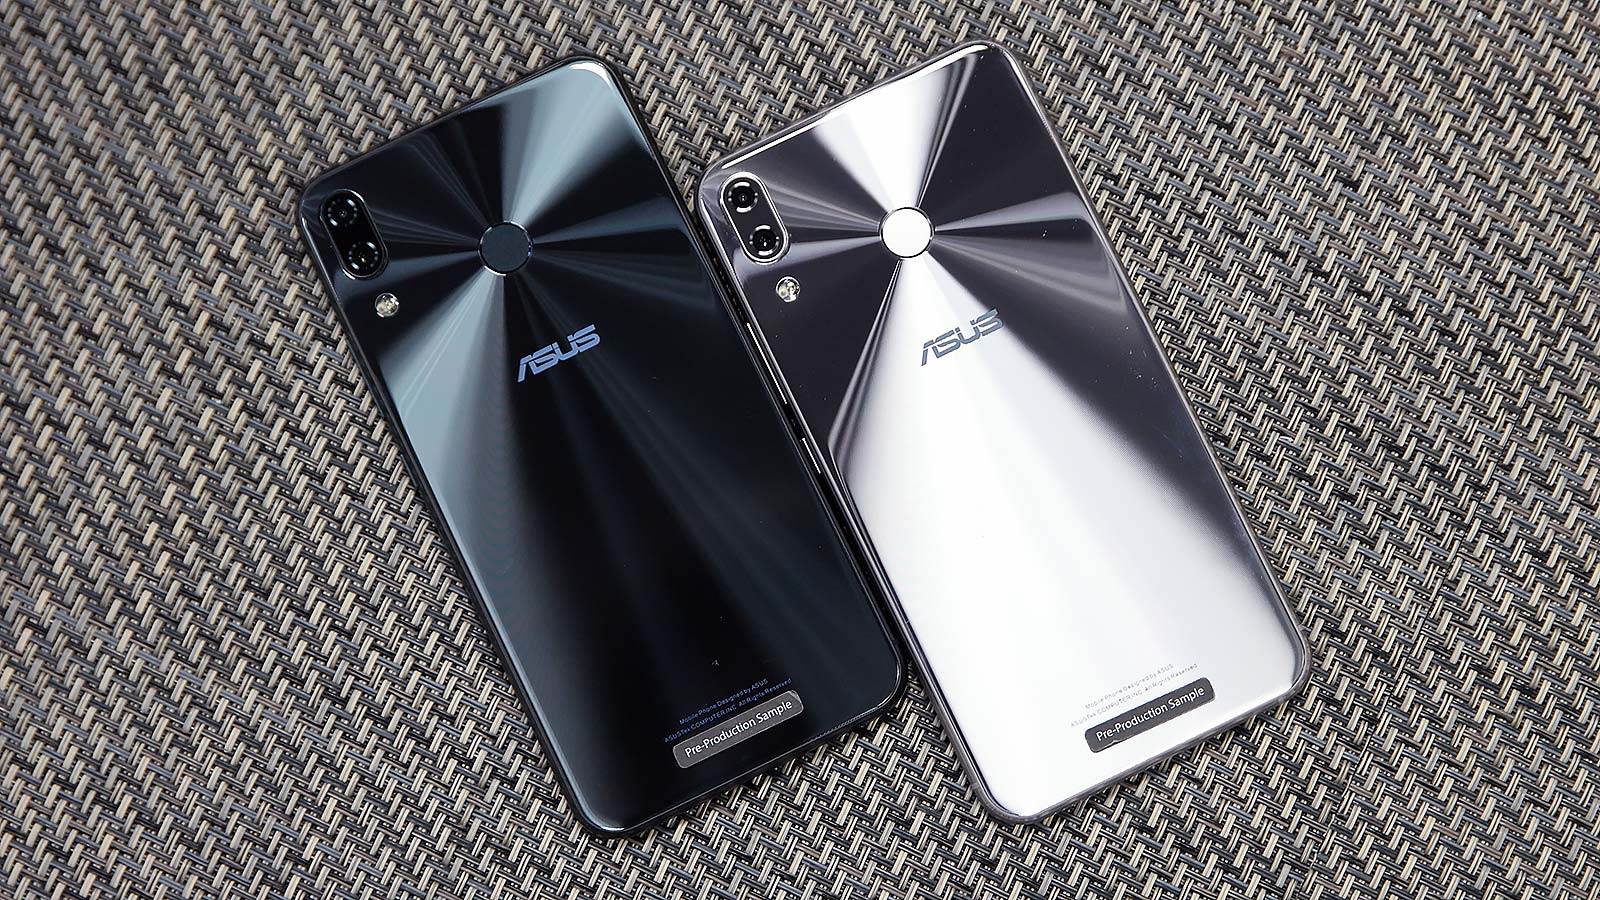 The mid-level Zenfone 5 comes in two colors: a bright silver, or darker, shiny charcoal gray.